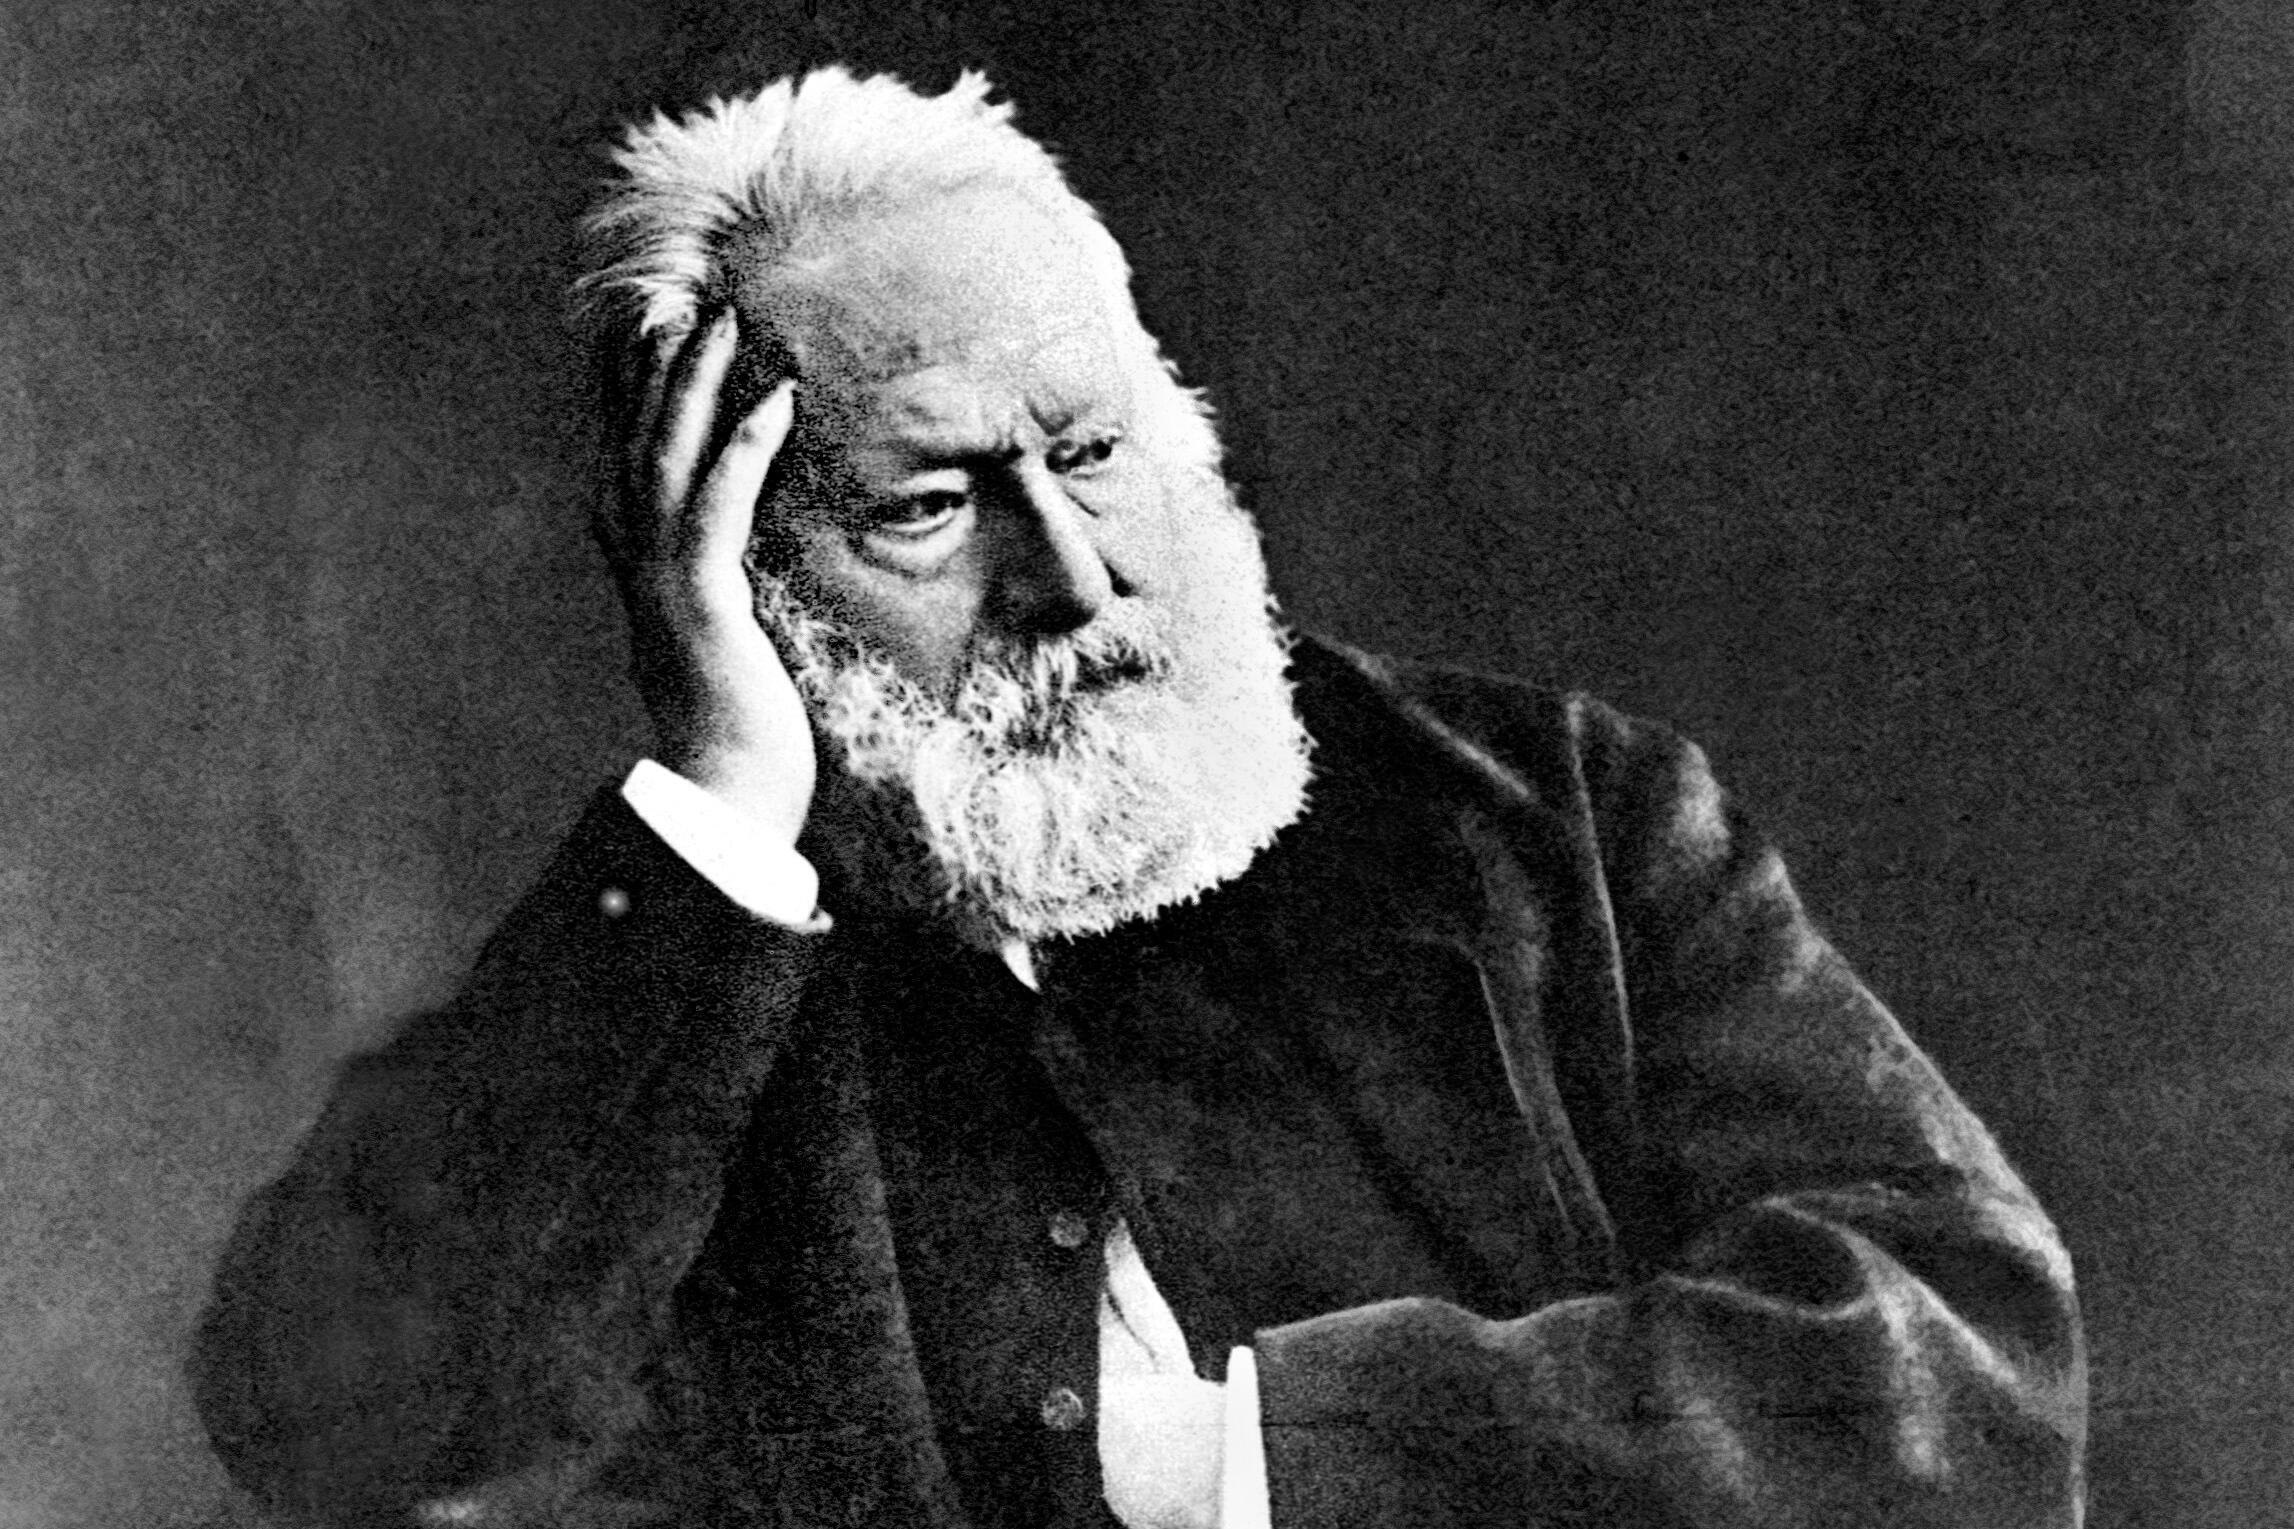 Victor Hugo is best known for for novels such as 'Les Miserables' and 'The Hunchback of Notre Dame' writing but he was also a talented artist